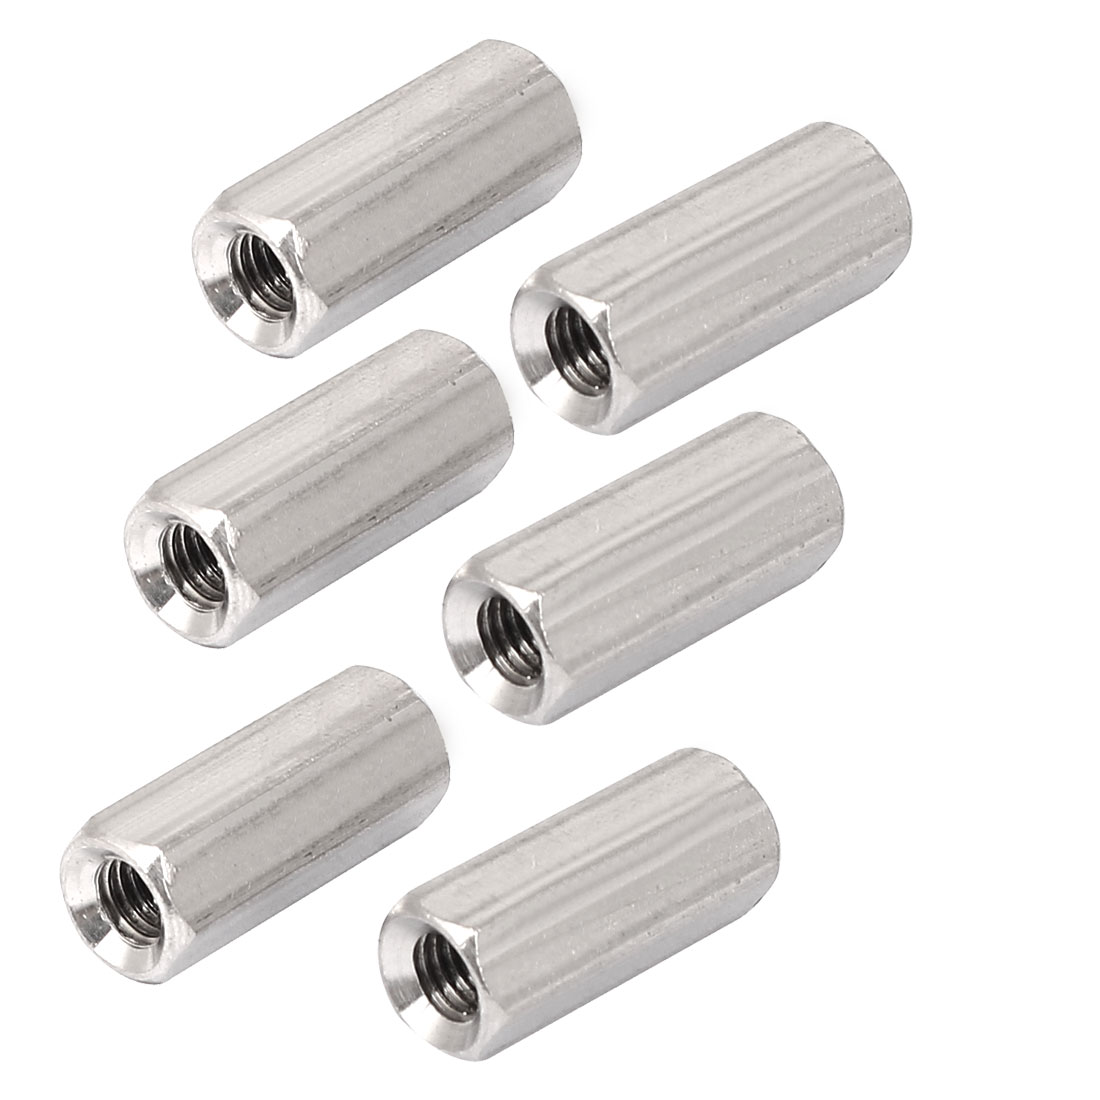 M5x20mm Stainless Steel Threaded Bar Rod Studding Hex Connector Deep Nut 6pcs